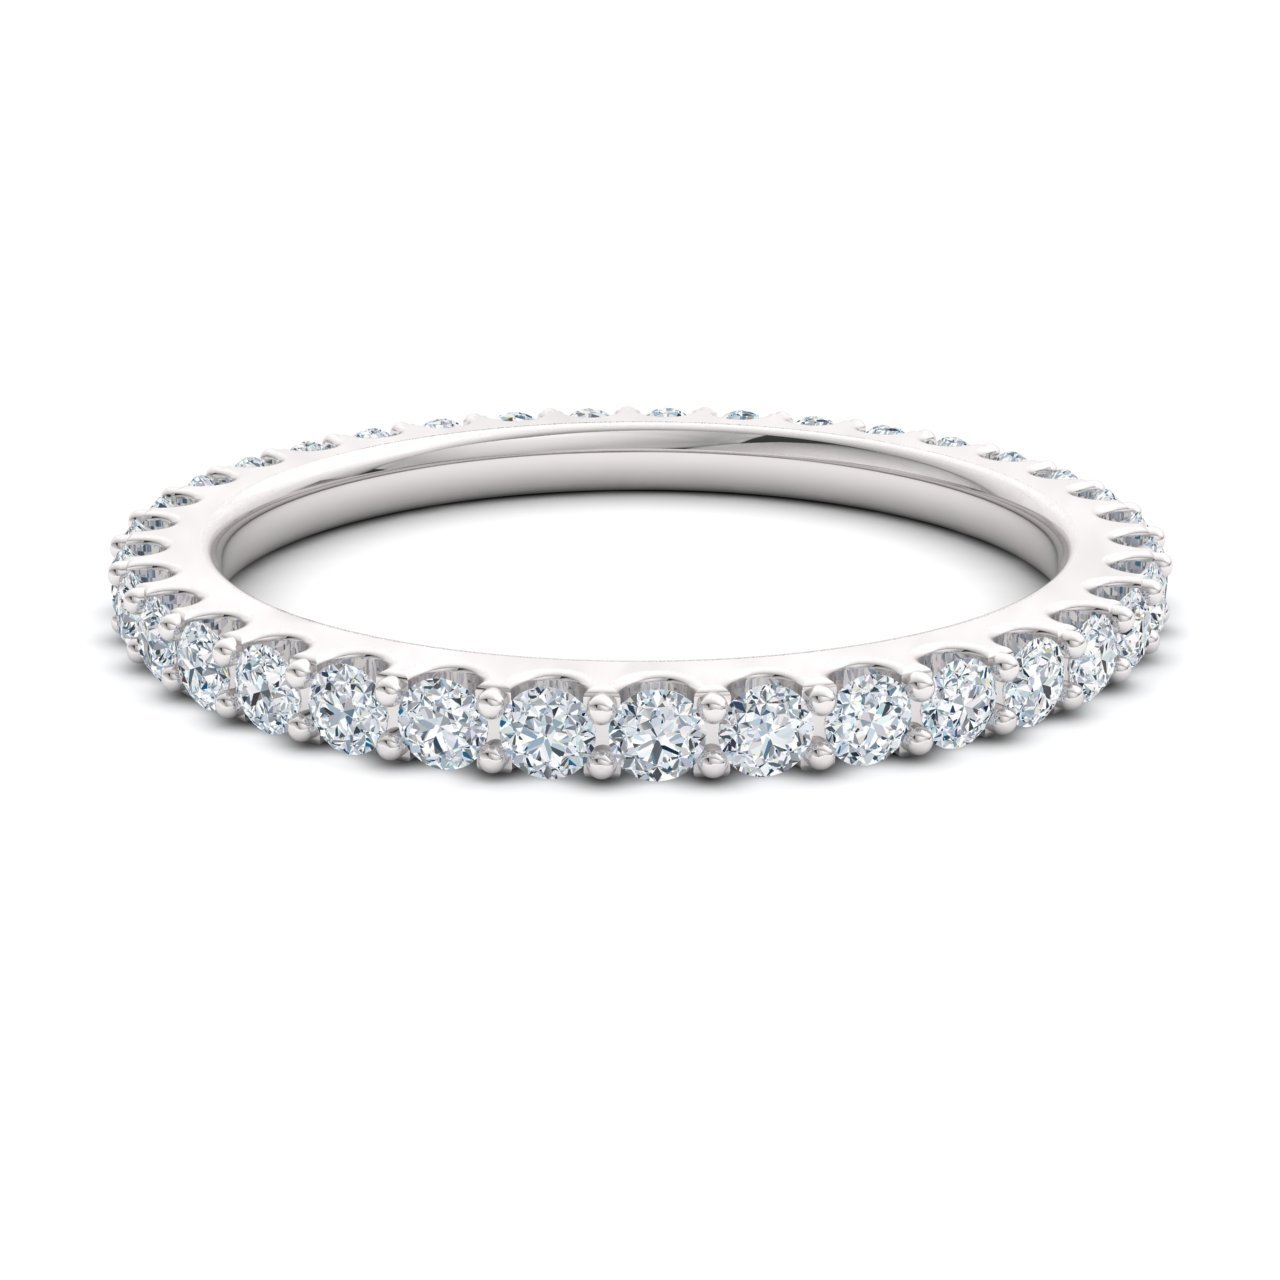 Diamondere Natural and Certified Diamond Wedding Ring in 14K White Gold | 0.79 Carat Full Eternity Stackable Band for Women, US Size 5.5 by Diamondere (Image #2)